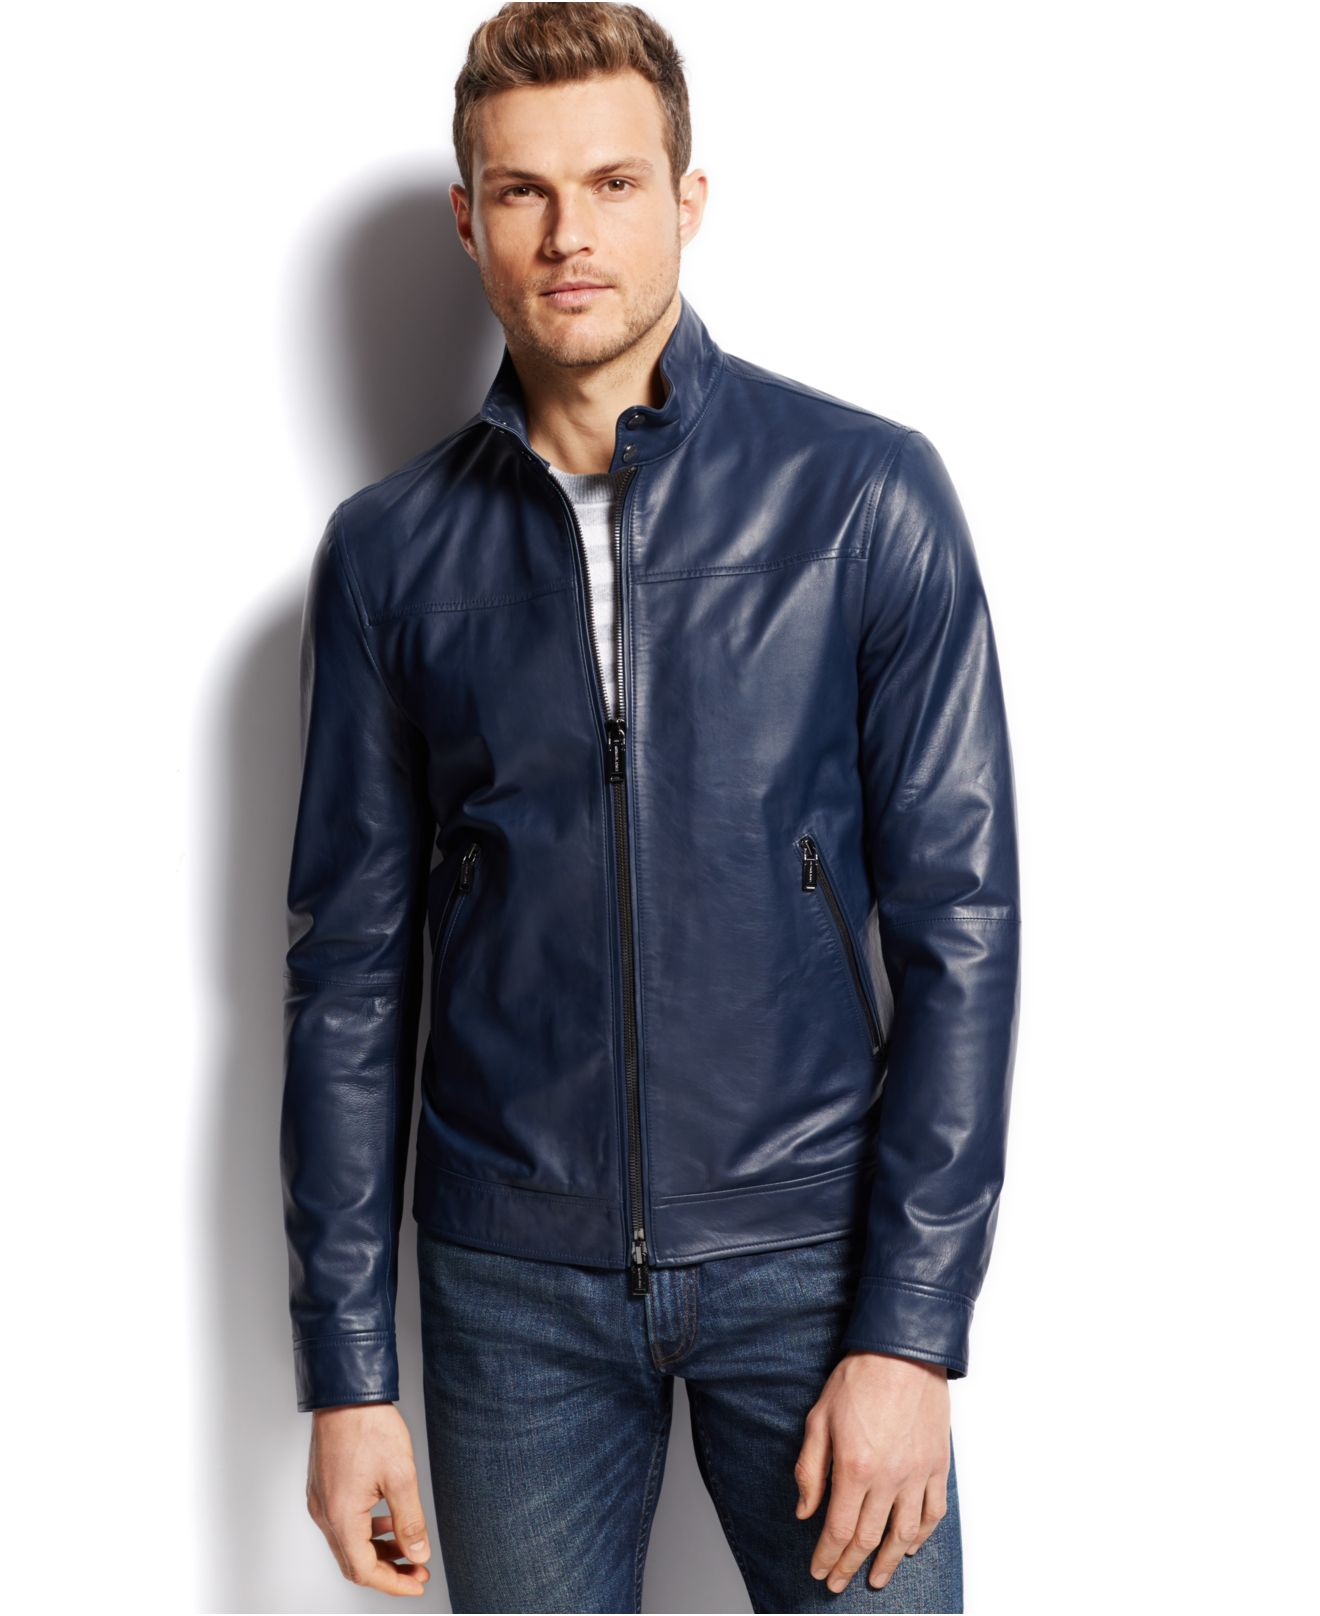 Michael kors Harrington Leather Jacket in Blue for Men | Lyst